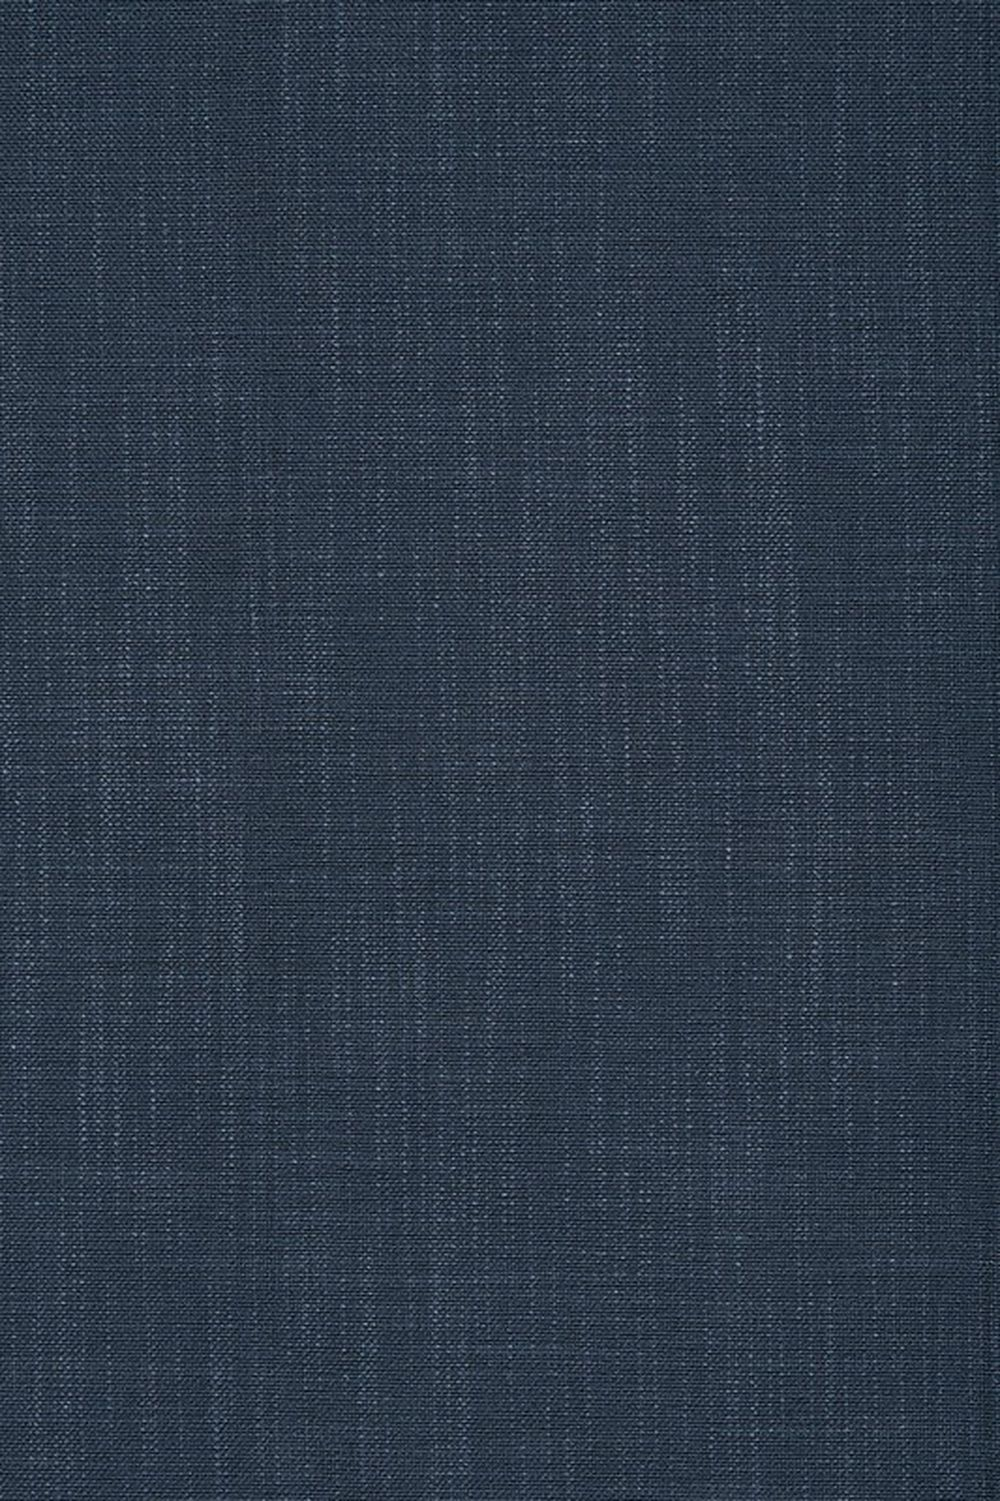 Photo of the fabric Allium Indigo swatch by Mokum. Use for Upholstery Heavy Duty, Accessory. Style of Plain, Texture